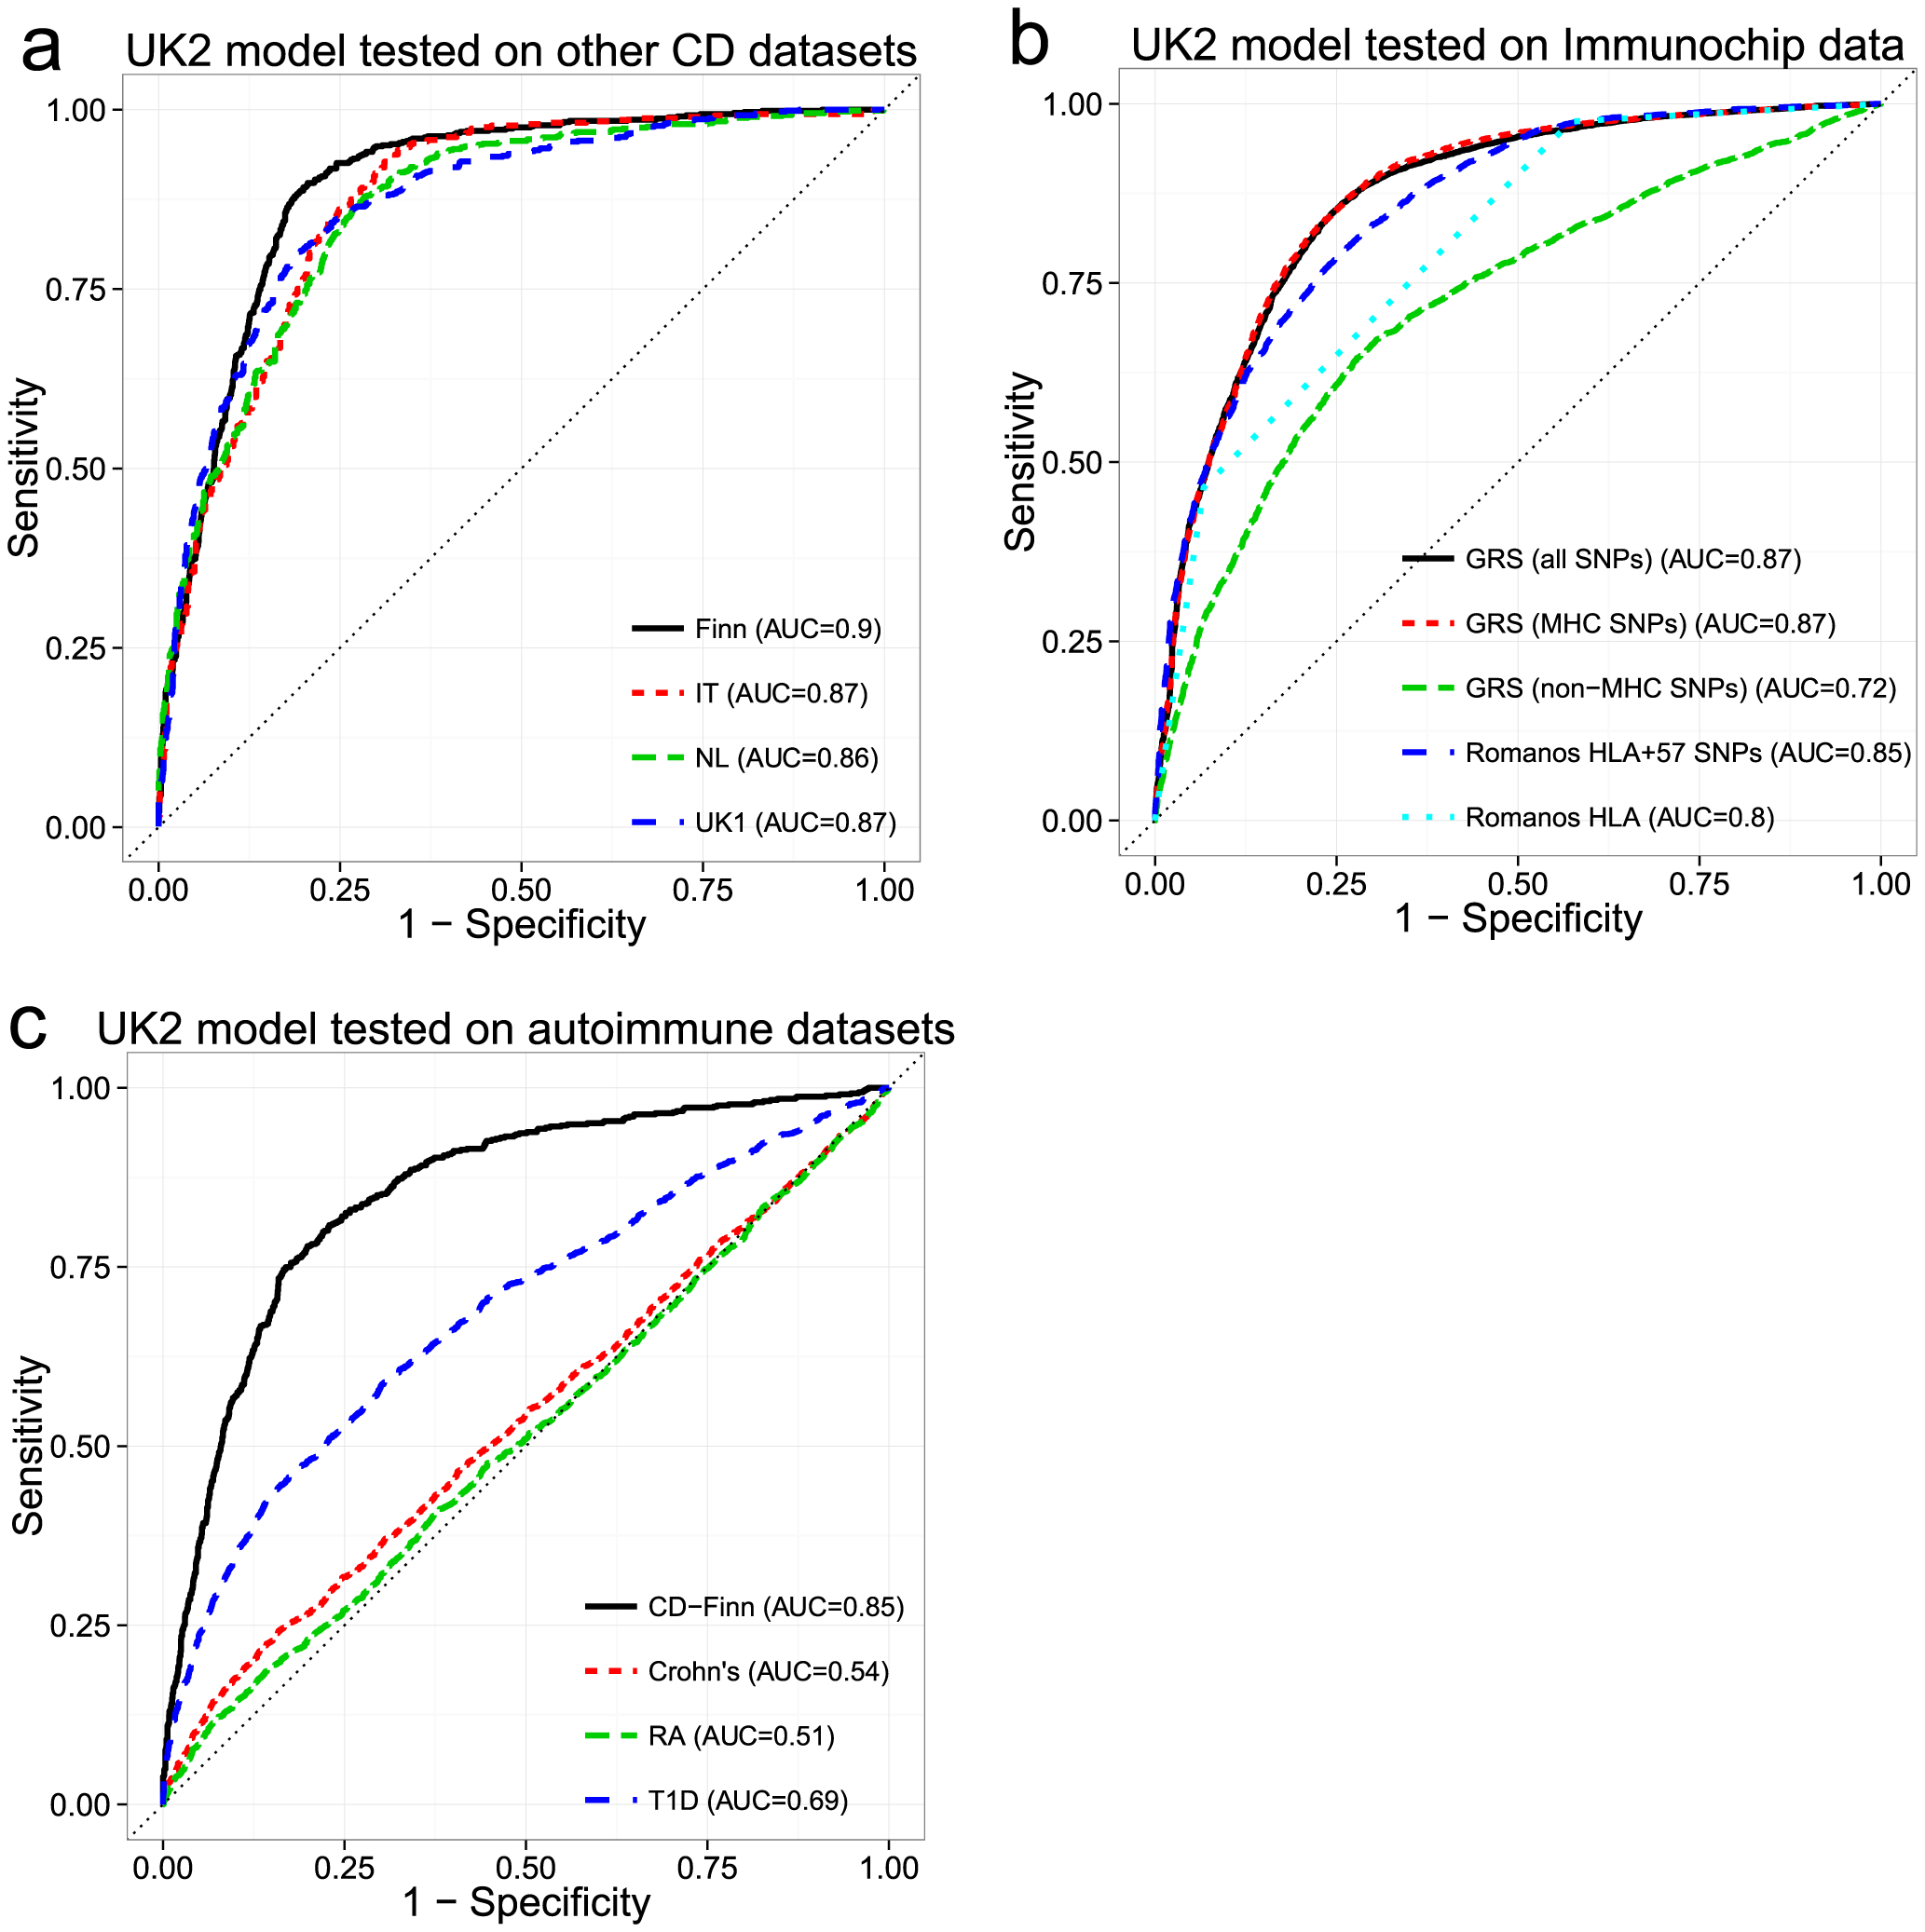 Performance of the genomic risk score in external validation, when compared to other approaches, and on other related diseases.